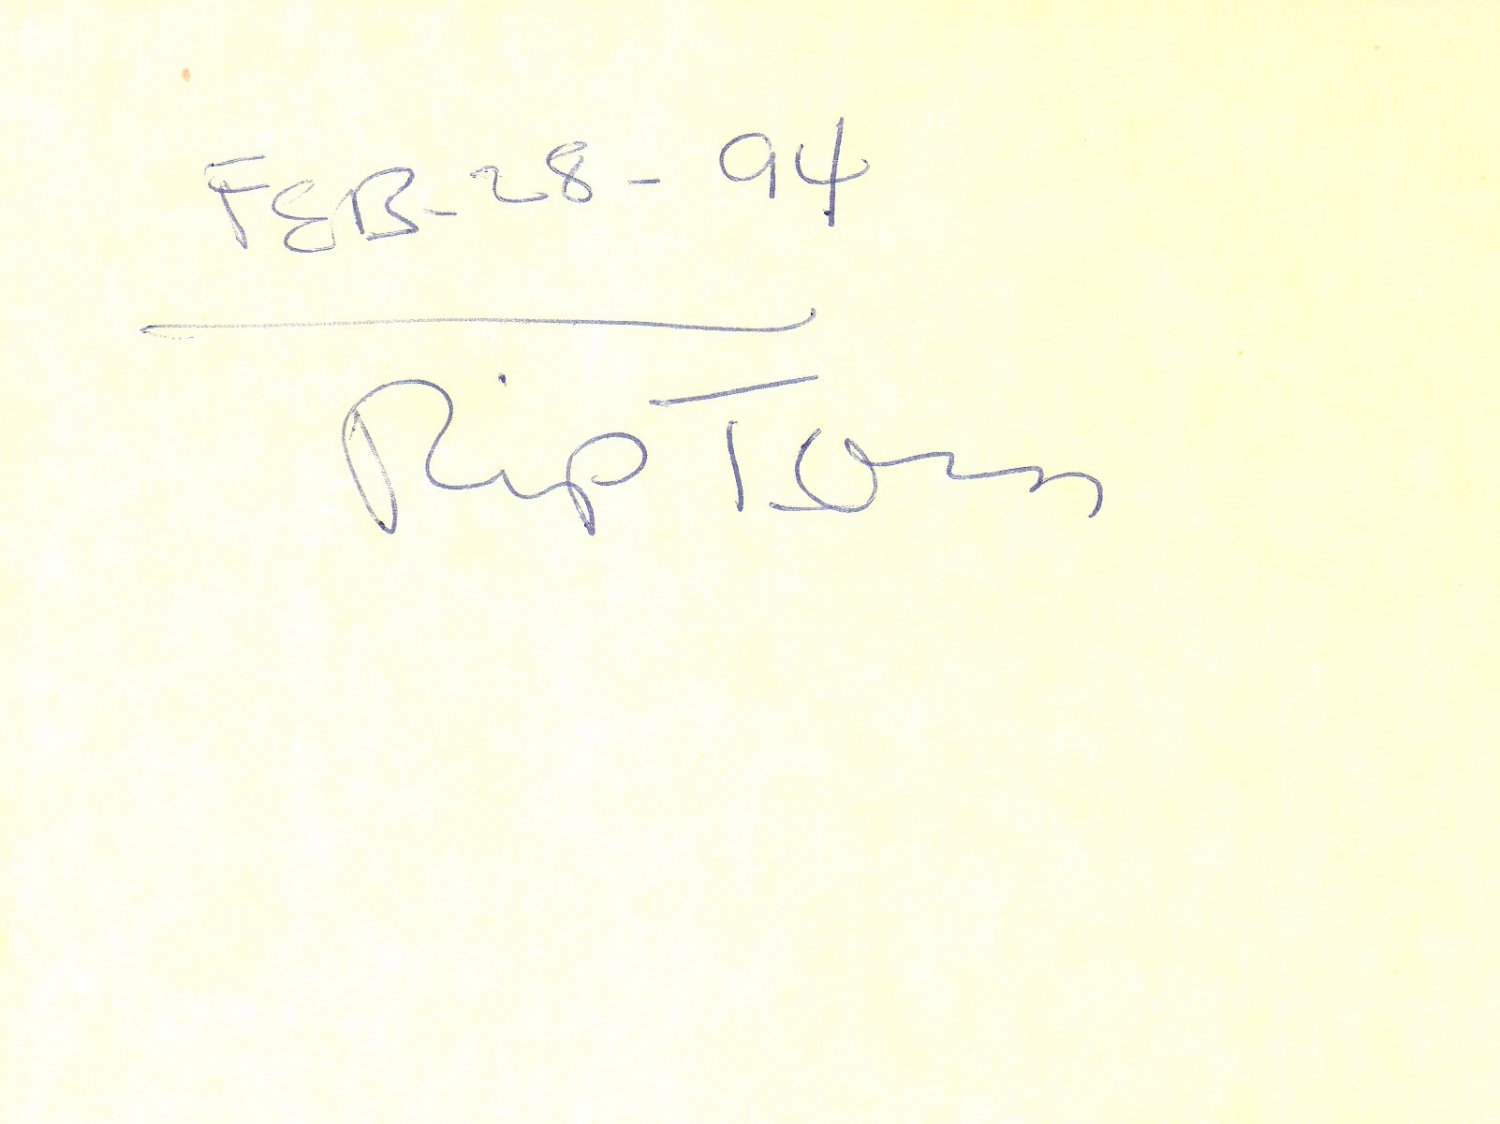 Rip Torn hand signed 4x6 album page